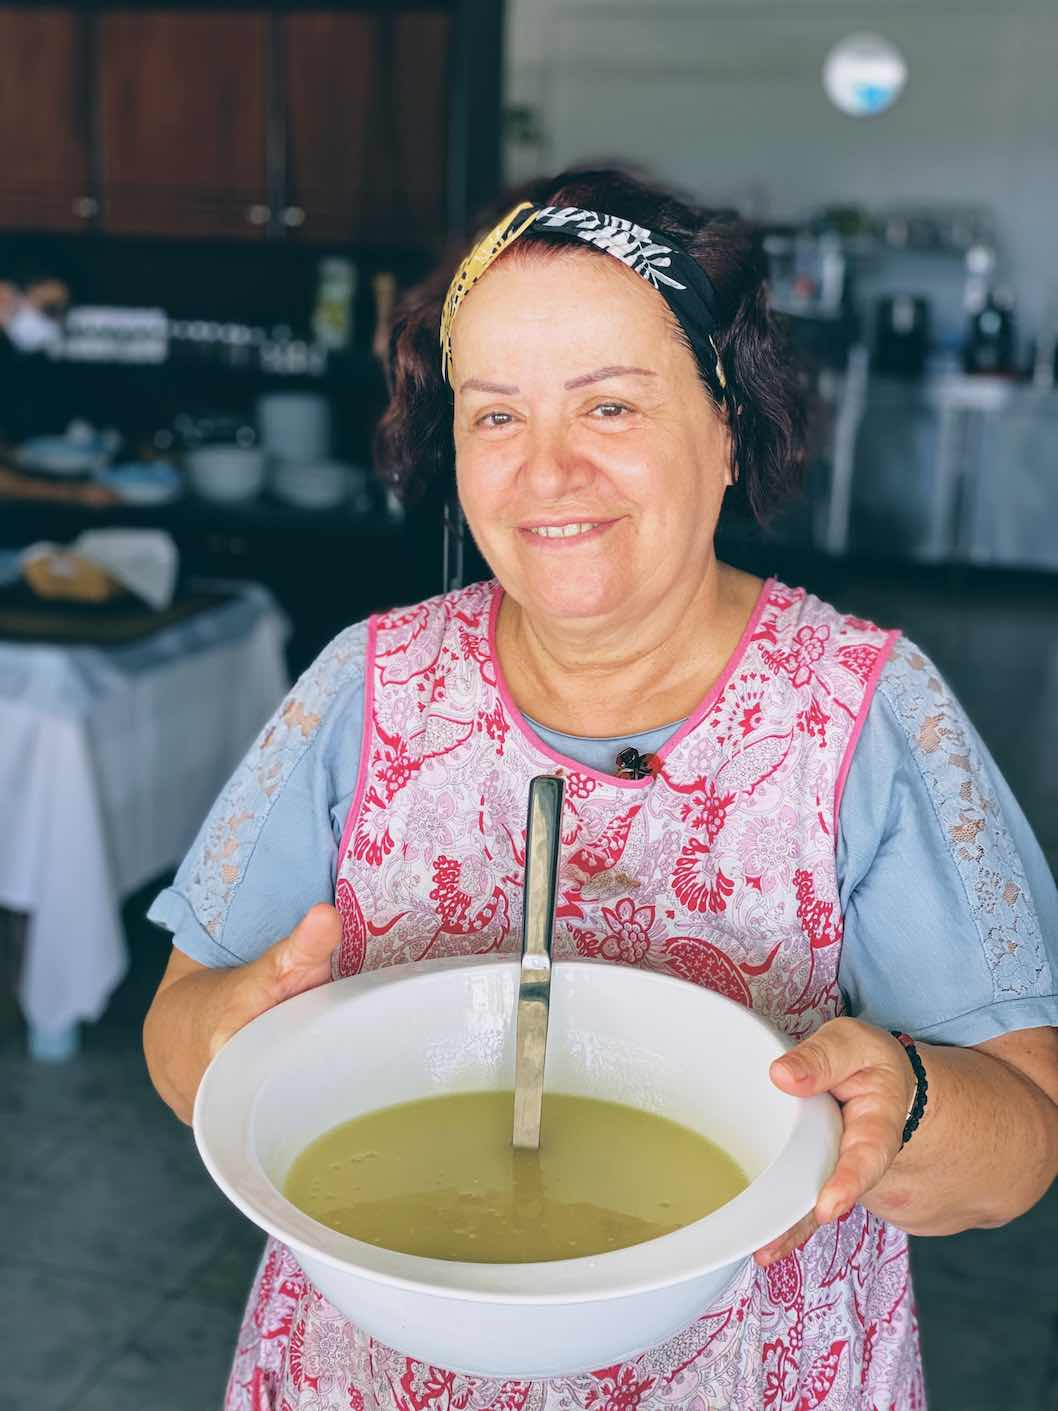 Sardis, Kimolos - Travel Food People